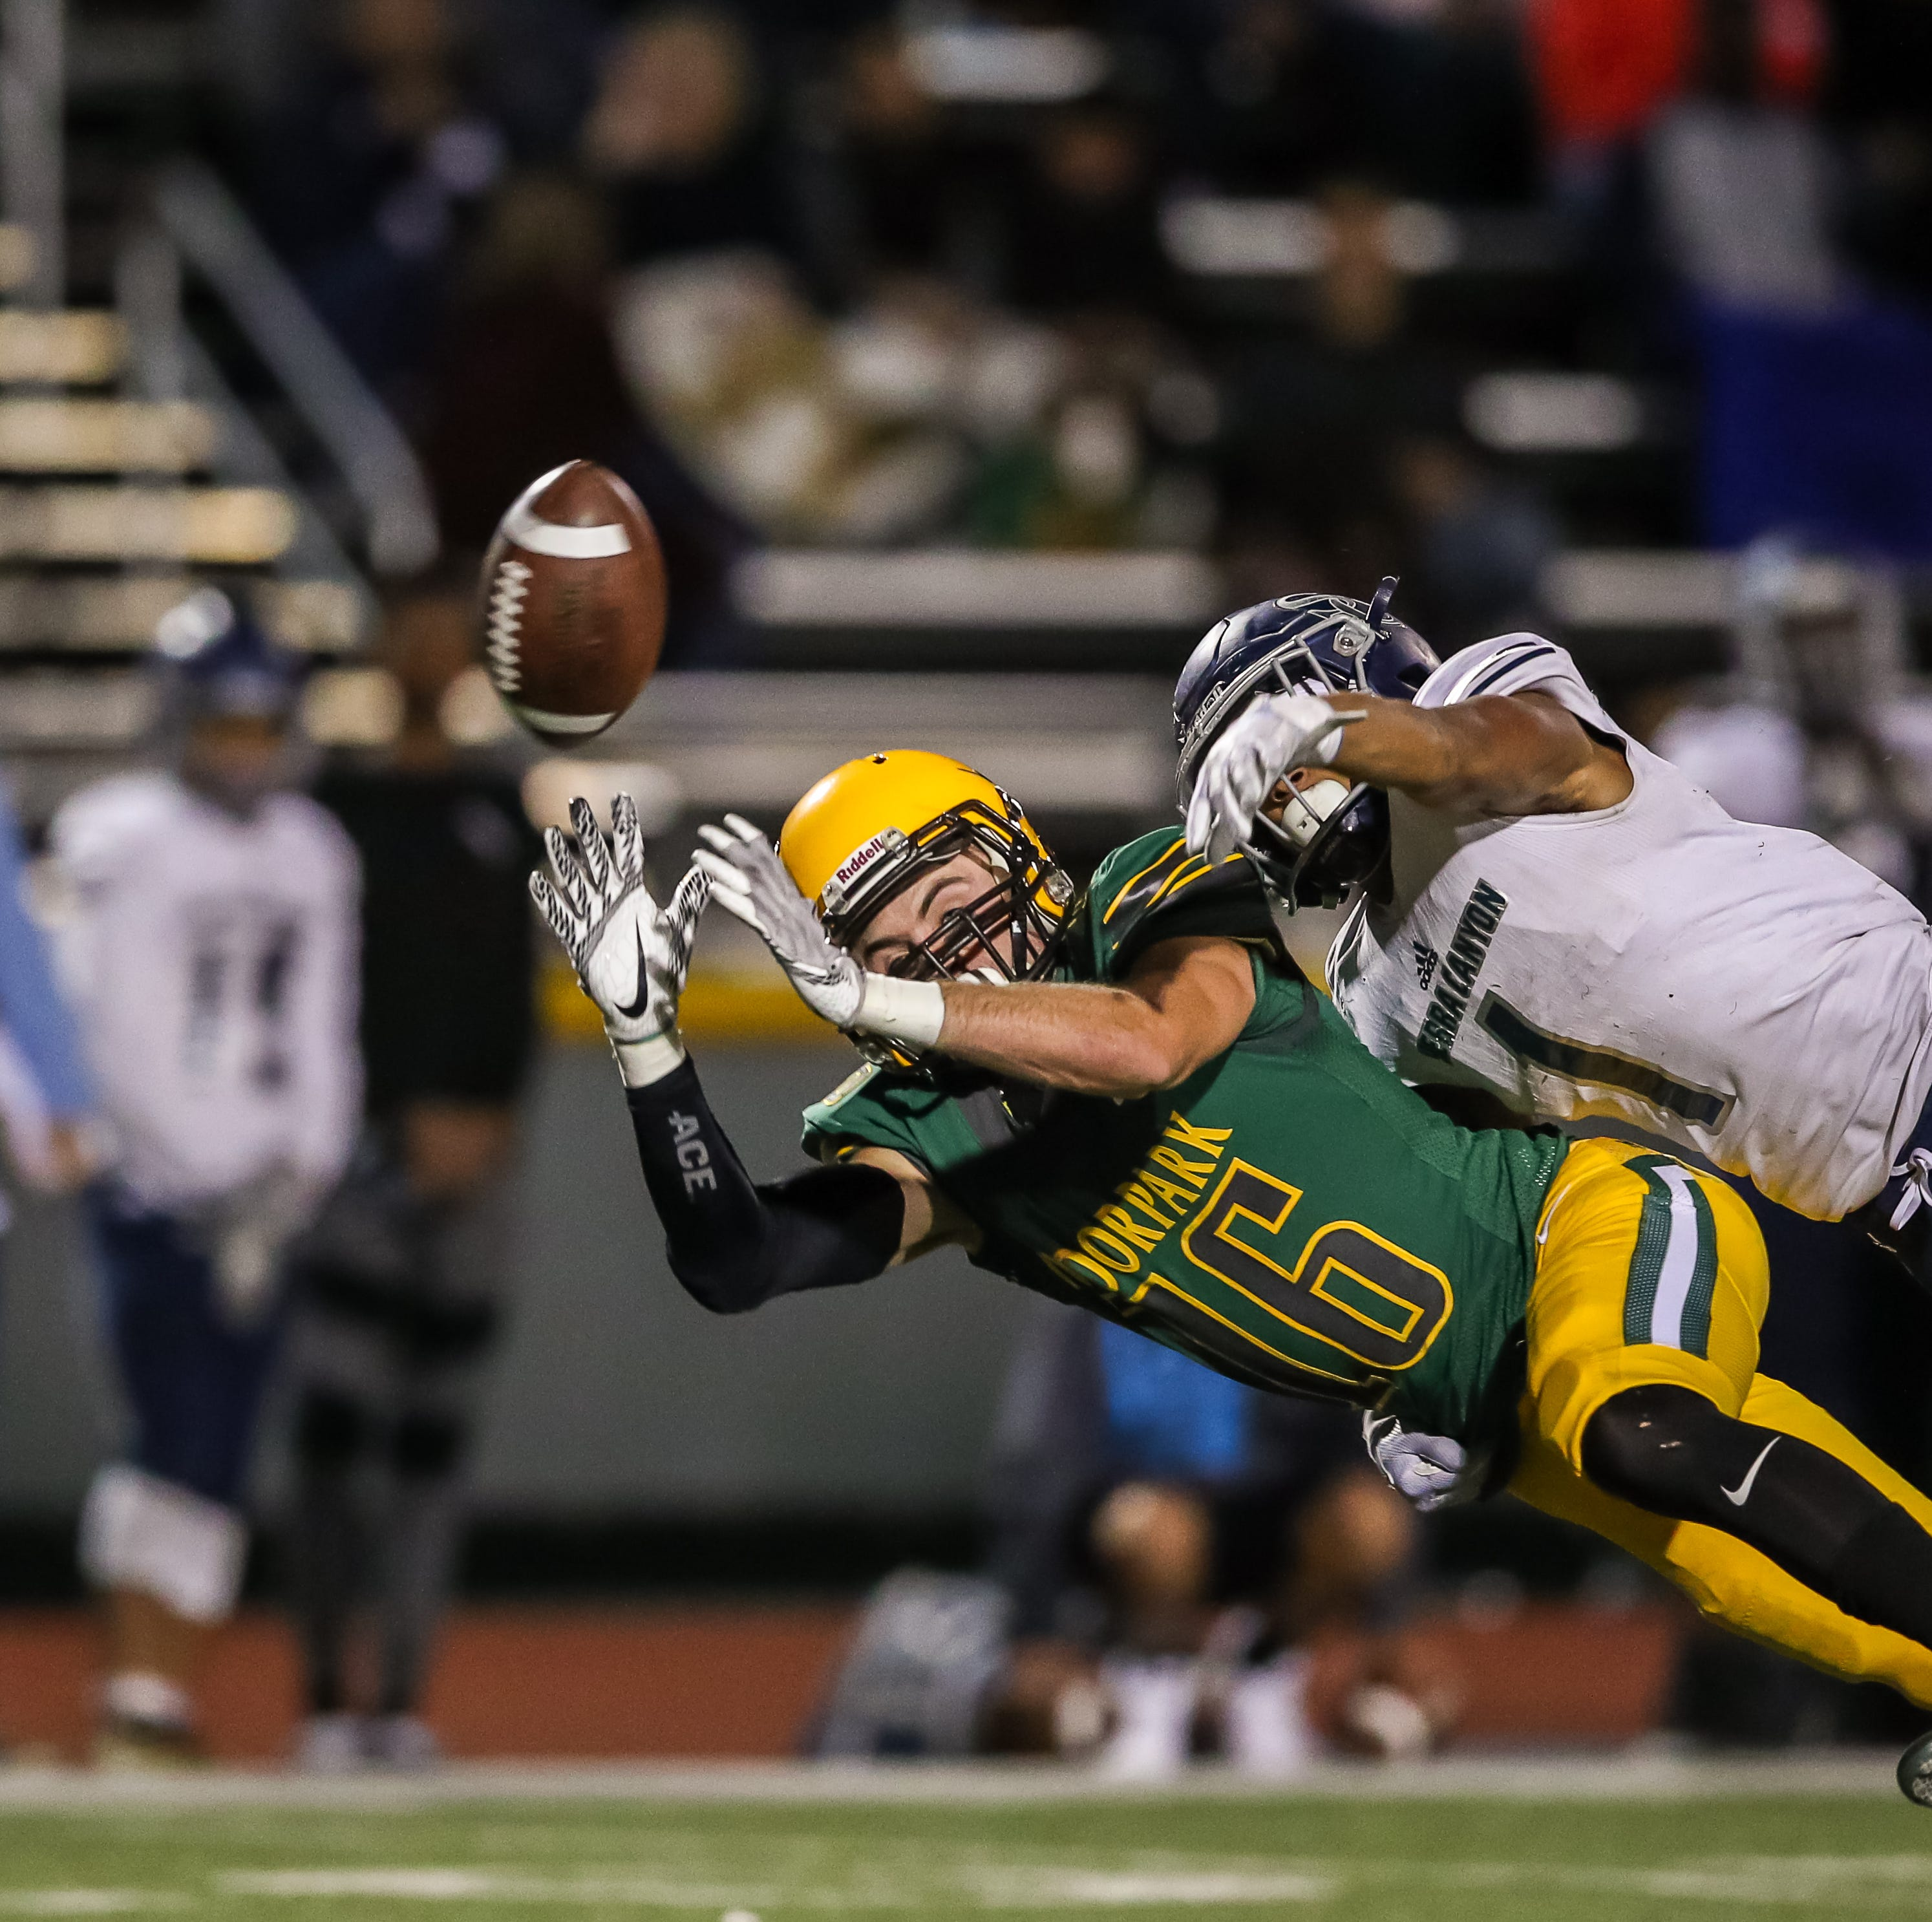 Moorpark's season ends with Division 3 quarterfinal loss to Sierra Canyon